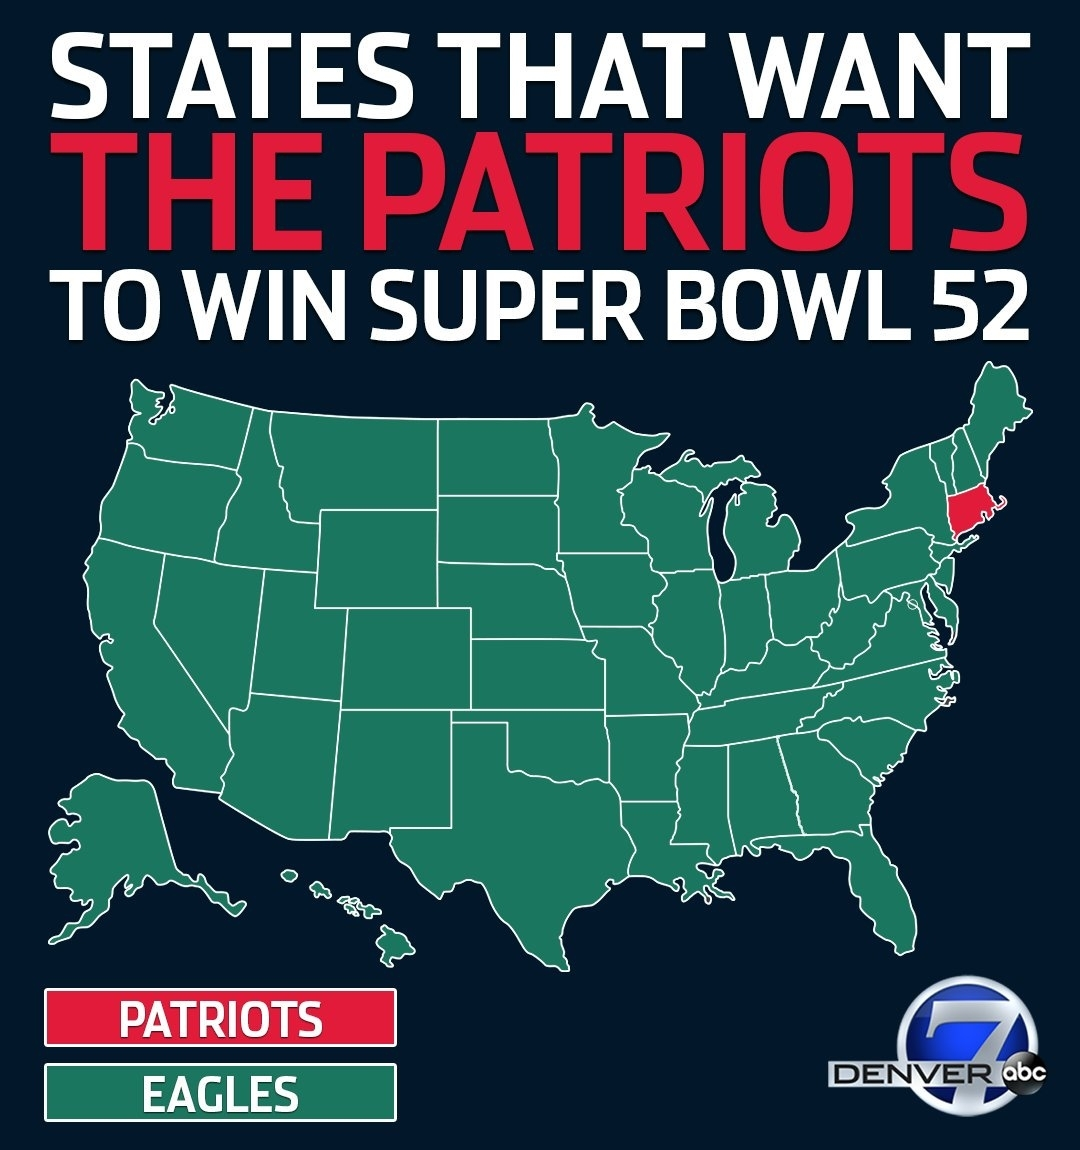 """Denver7 News On Twitter: """"excited For #superbowl Sunday with Map Of Who Wants To Win Super Bowl"""